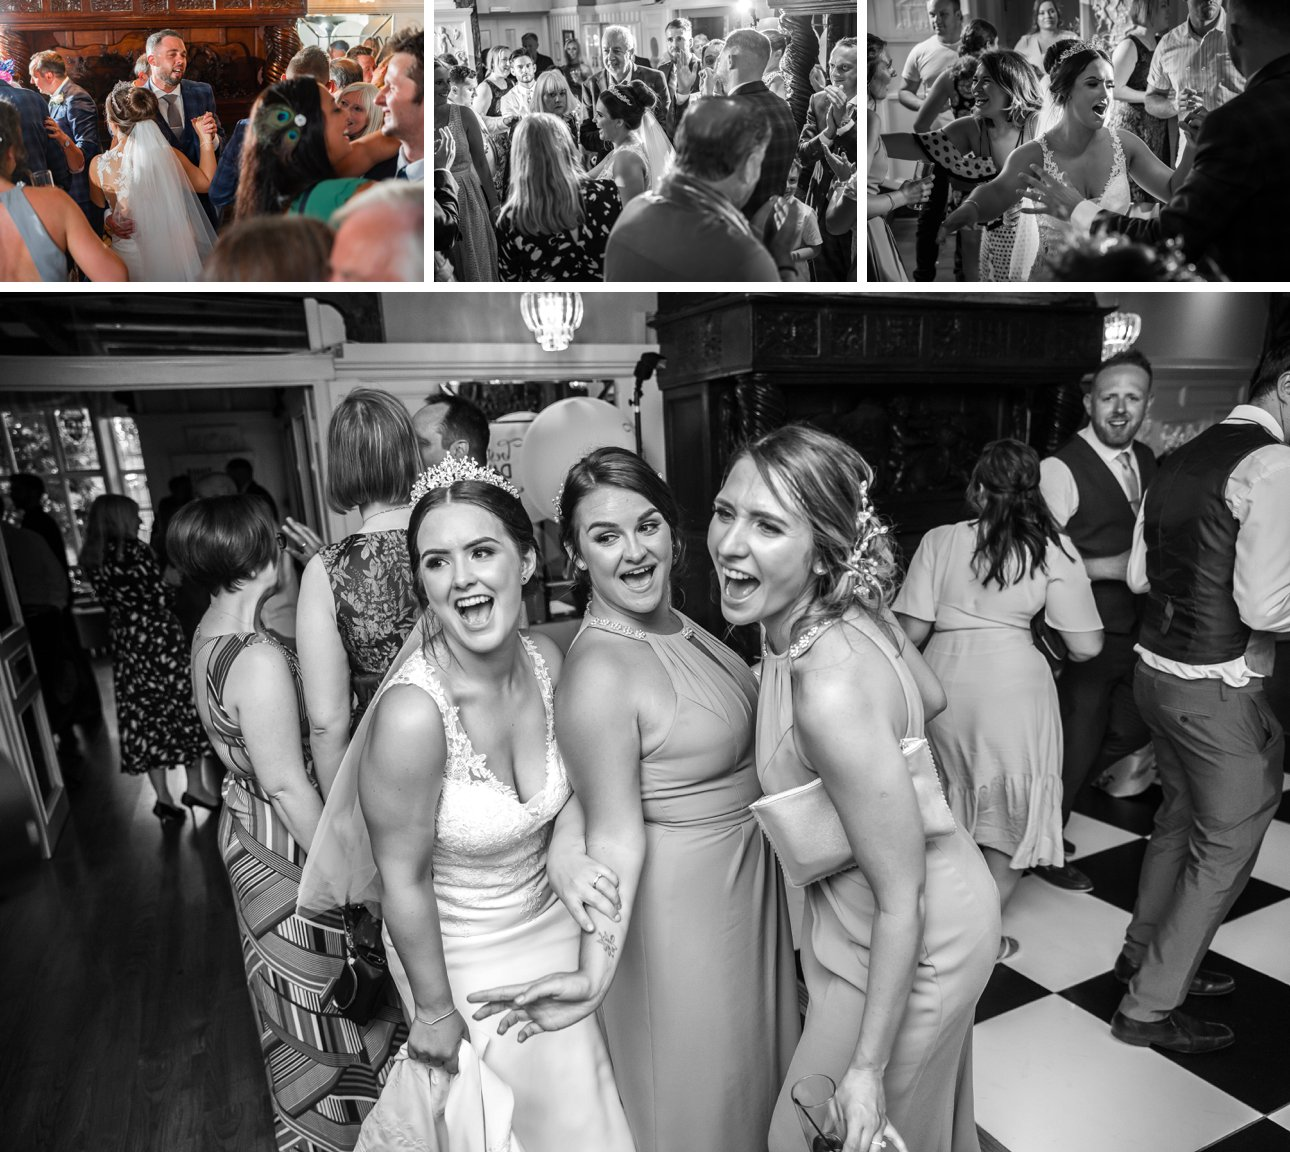 The dance floor at The Manor Elstree fills with guests and bridesmaids after the bride and groom's first dance.